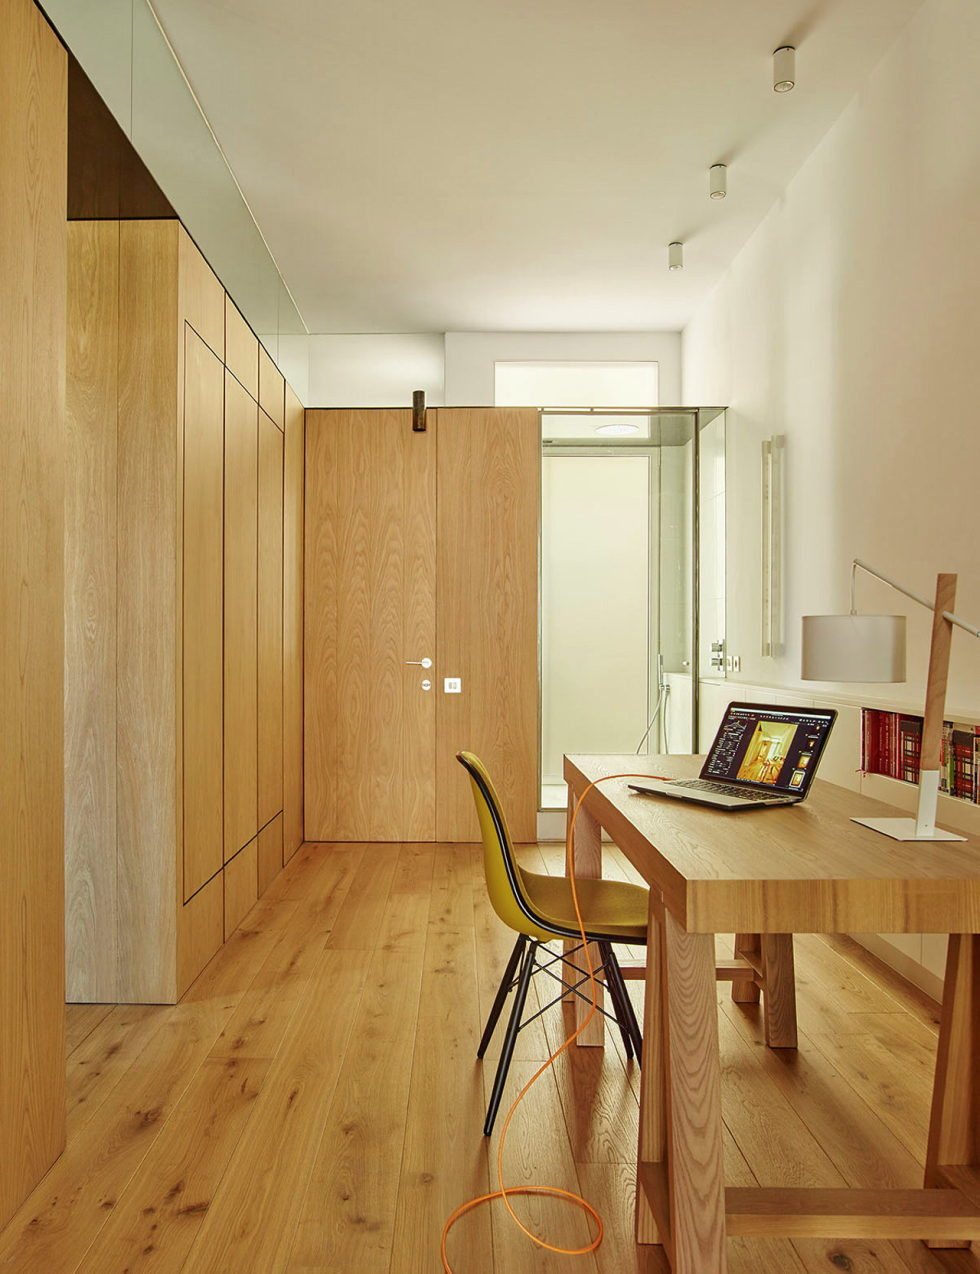 AB House 19th-century Barcelona apartment by Built Architecture 4